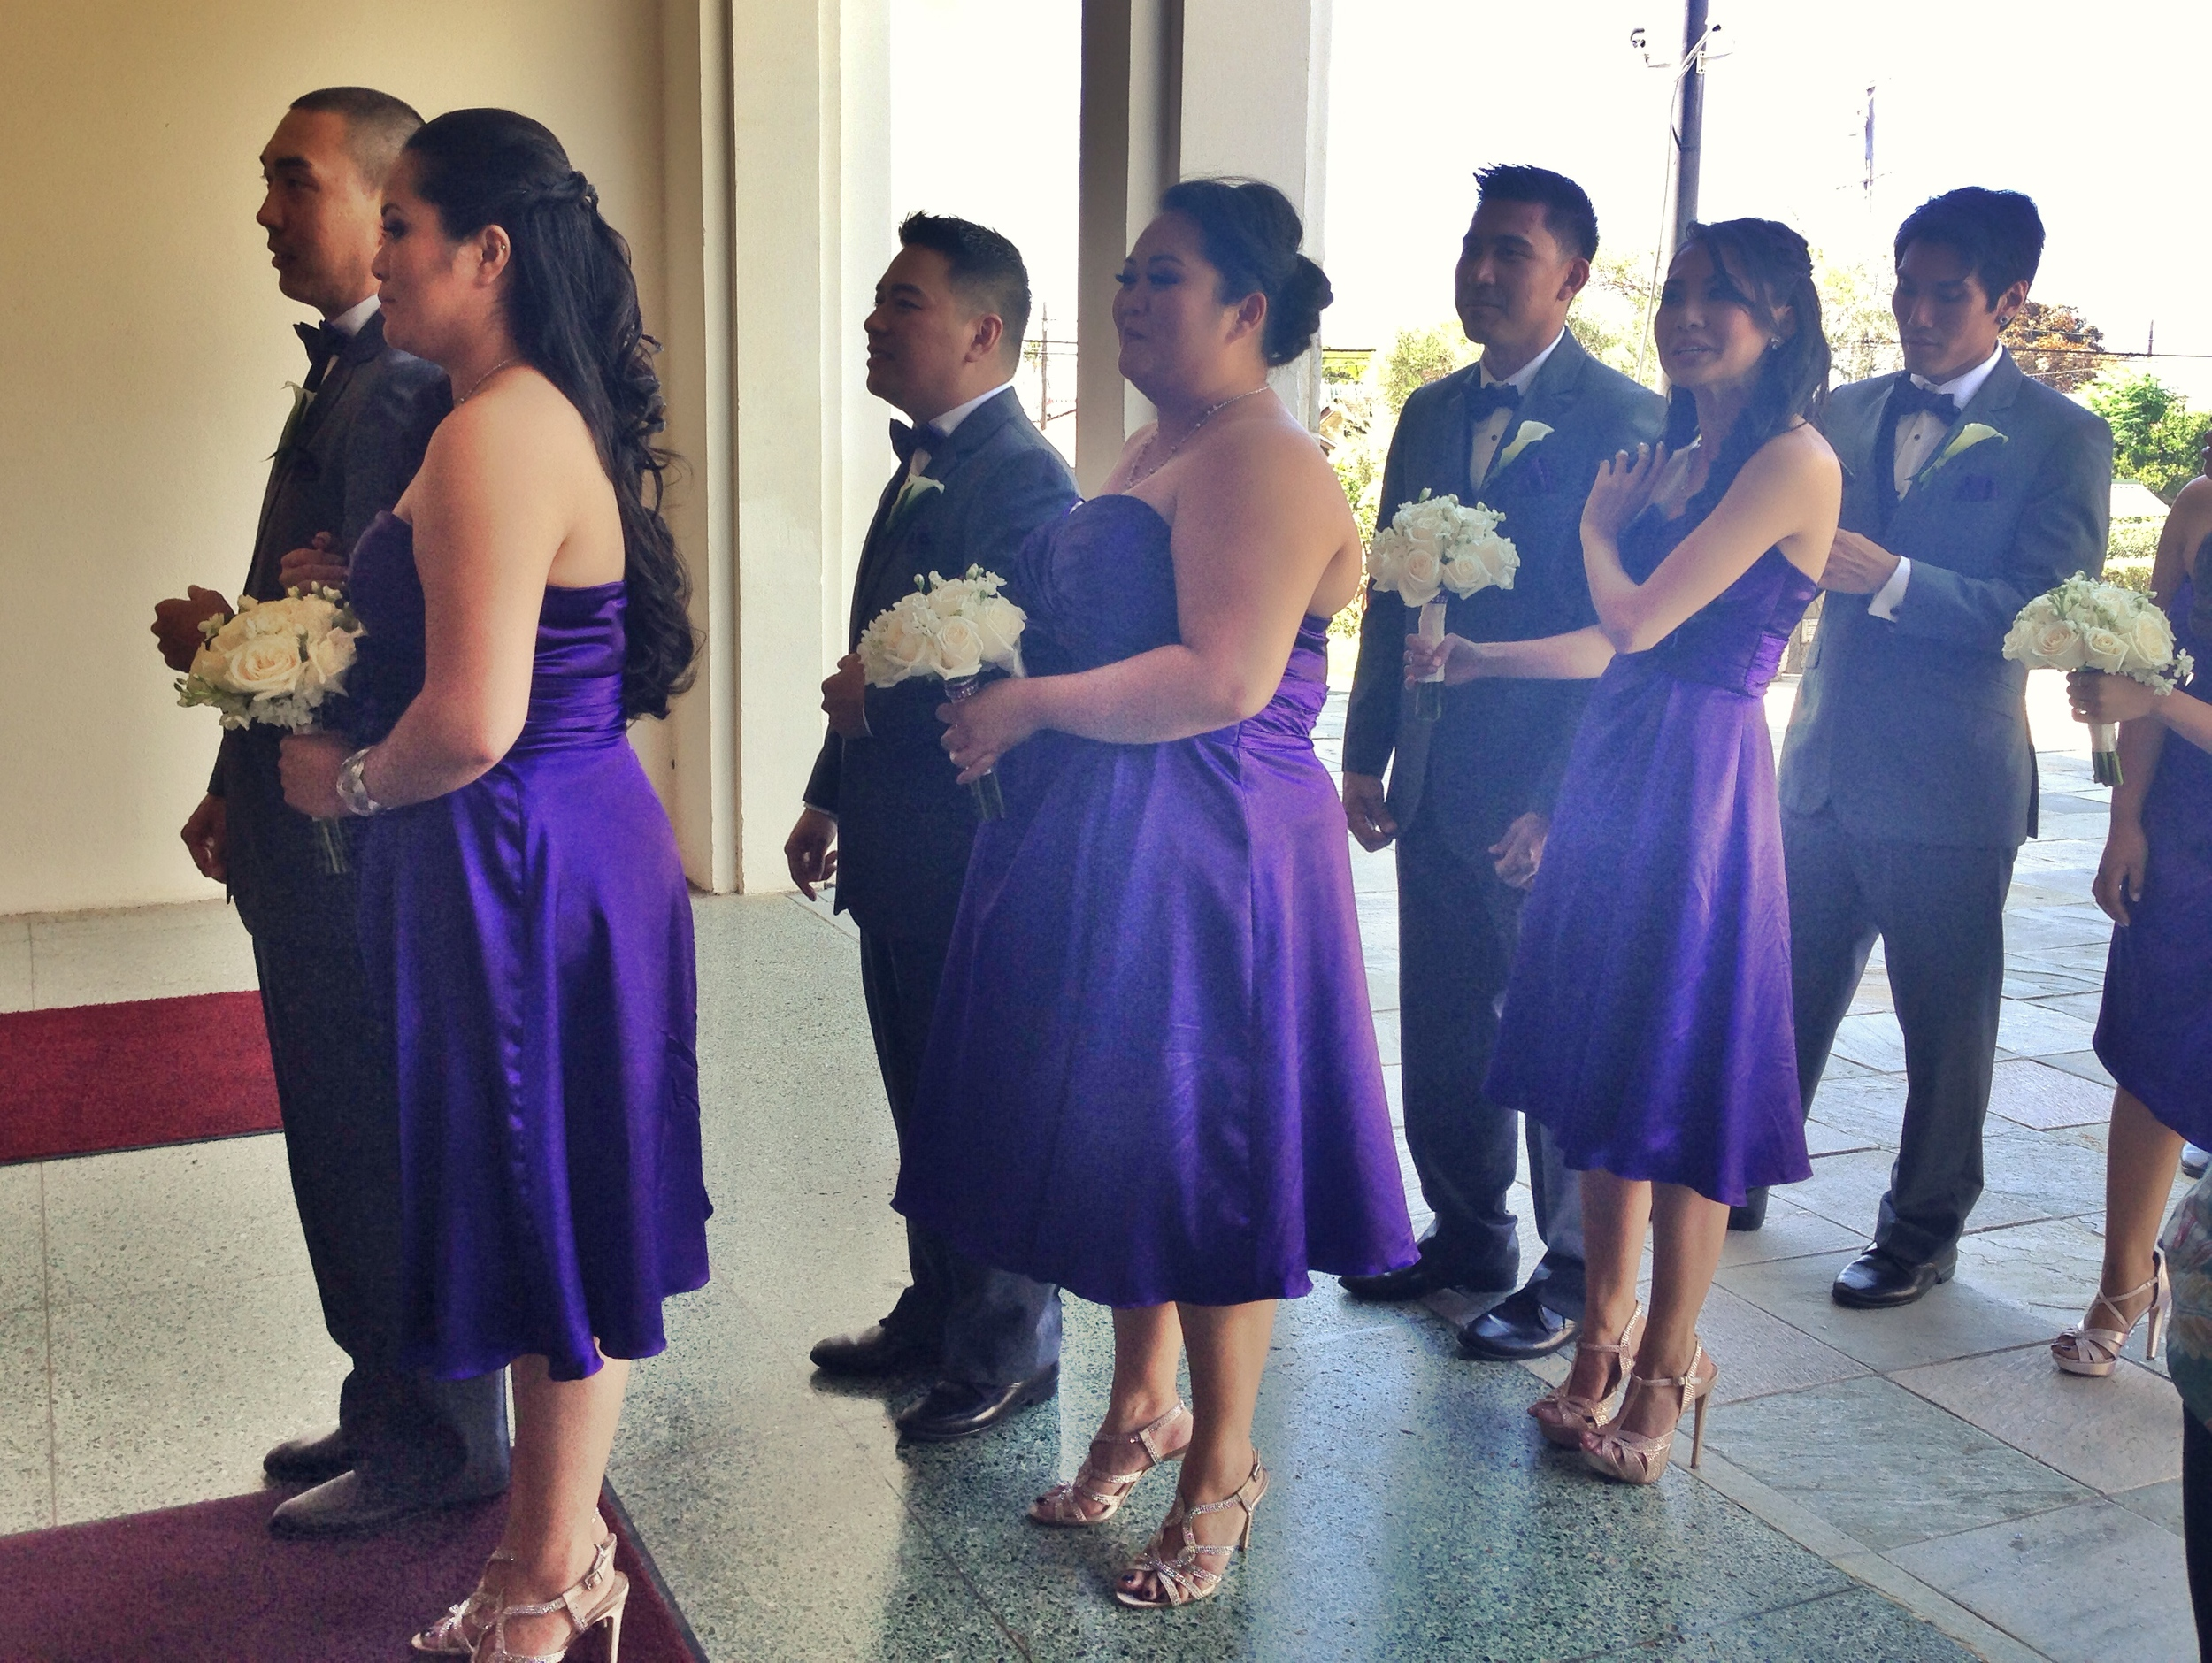 oahu-wedding-party-bridesmaids-groomsmen